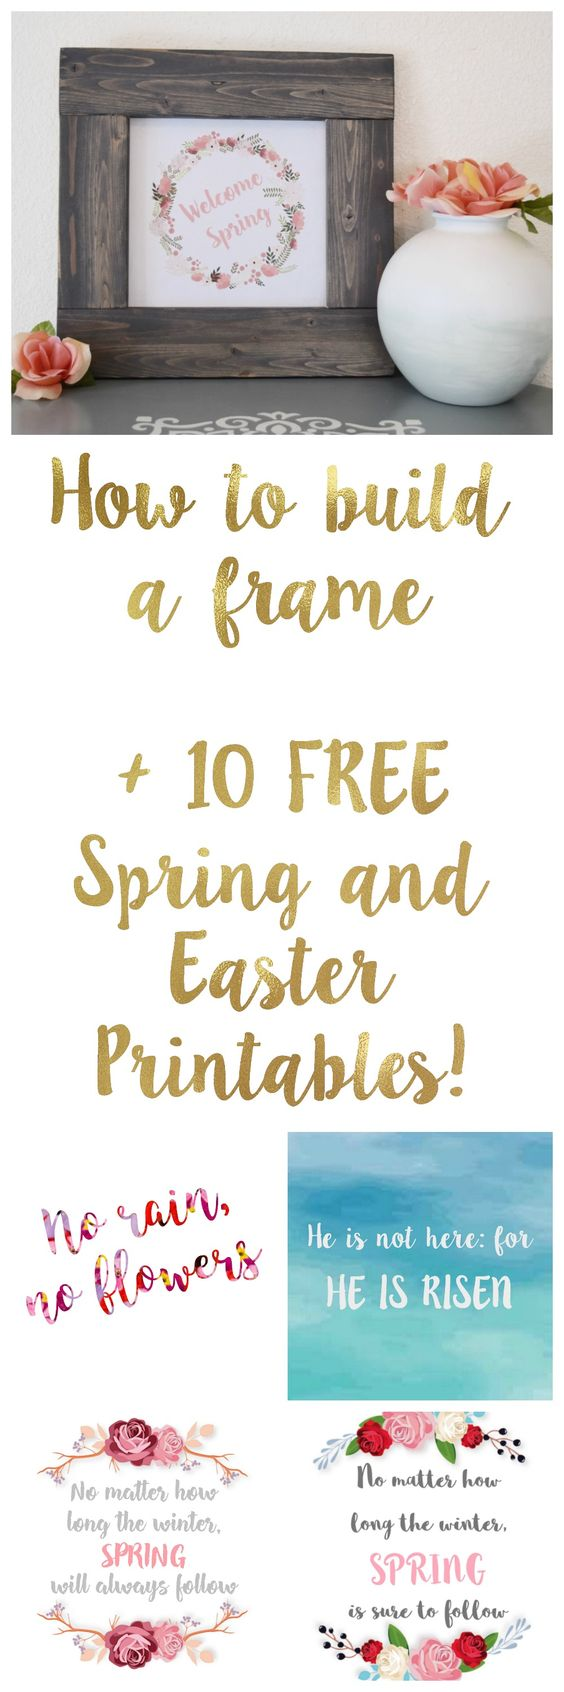 How to build a picture frame. DIY frame with stain. 10 Free Spring and Easter Printables!!!: